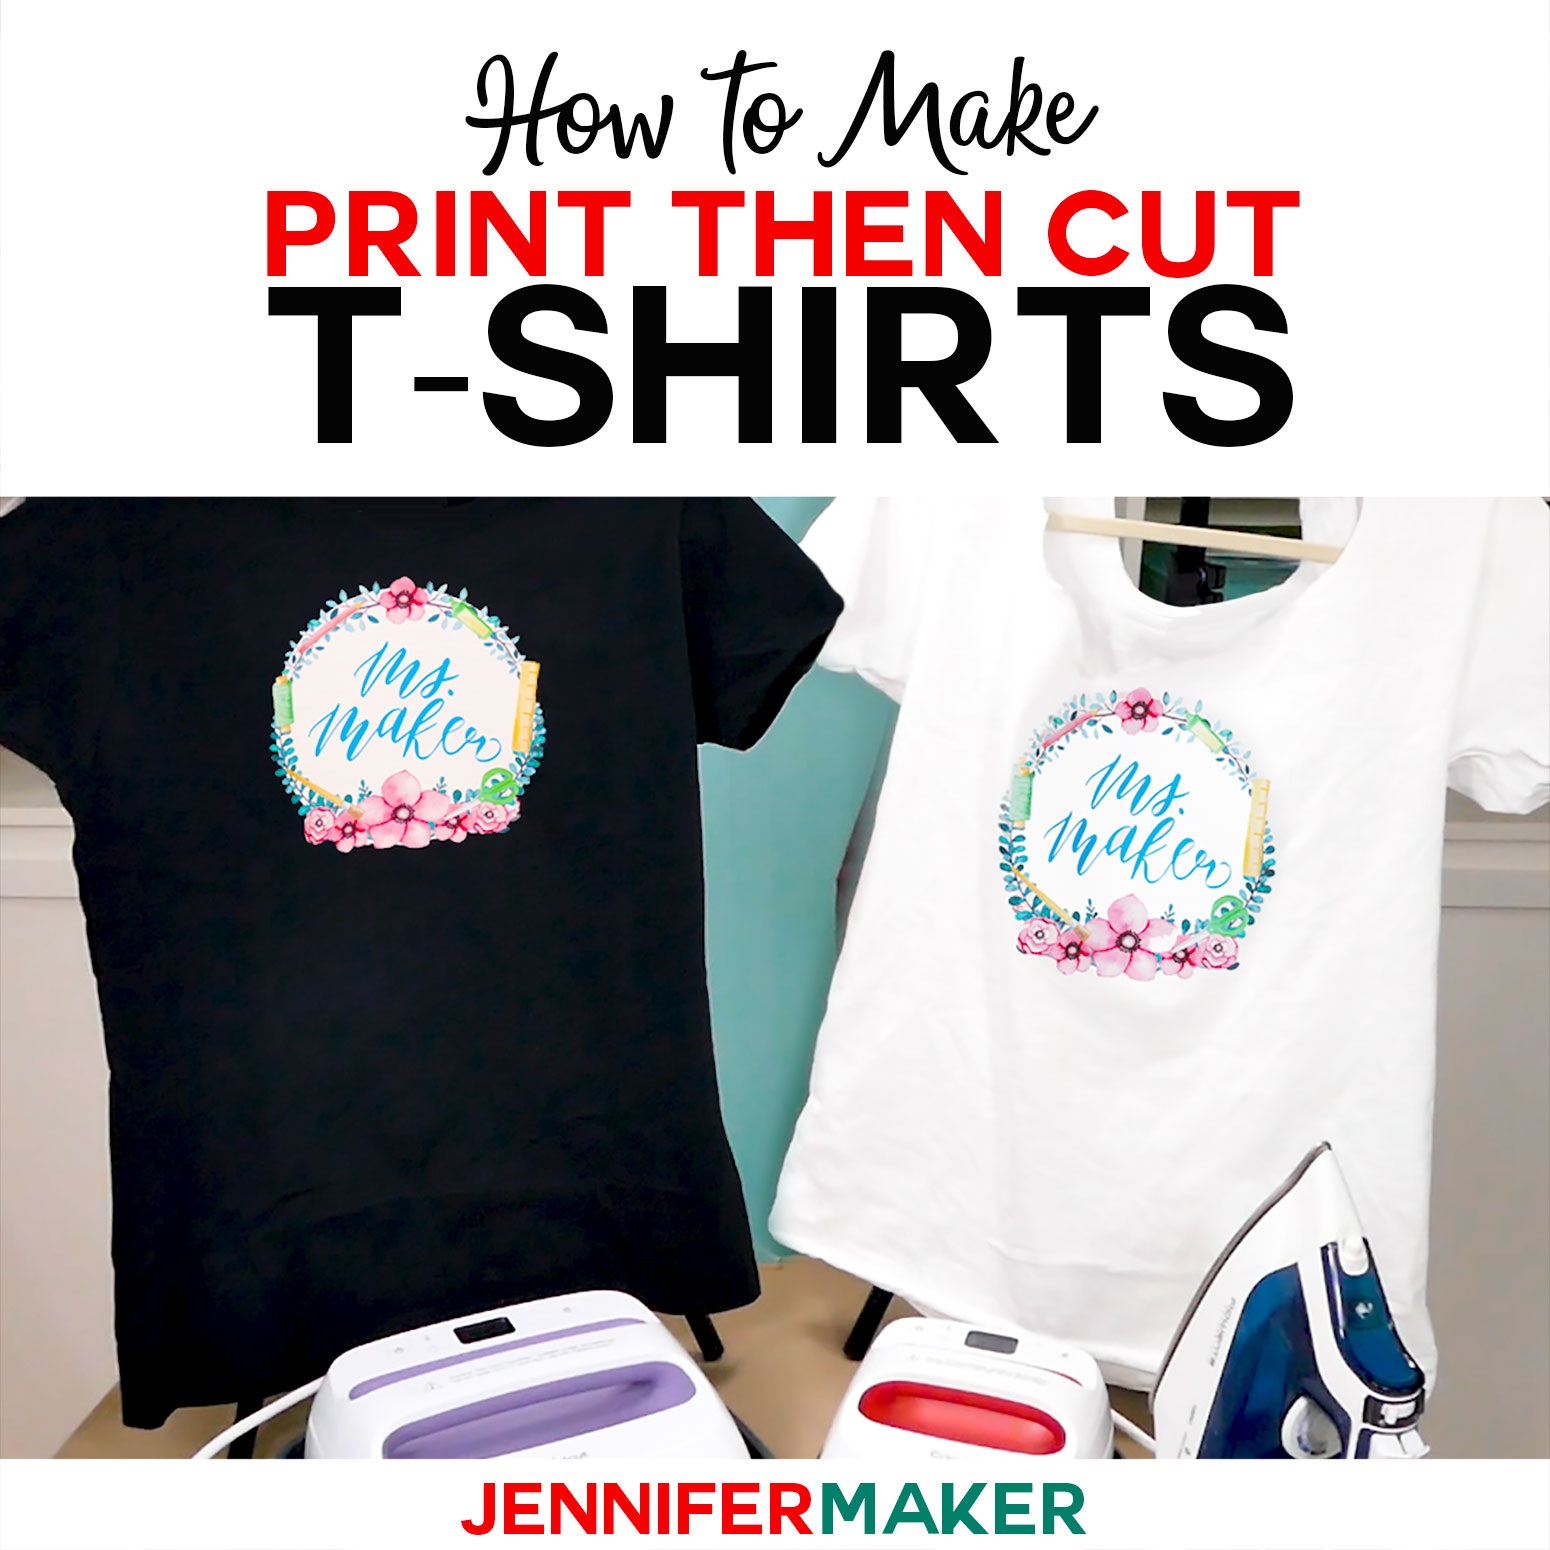 photo about Printable Iron on Transfer called Print Then Reduce Cricut Move T-Shirts - Jennifer Producer